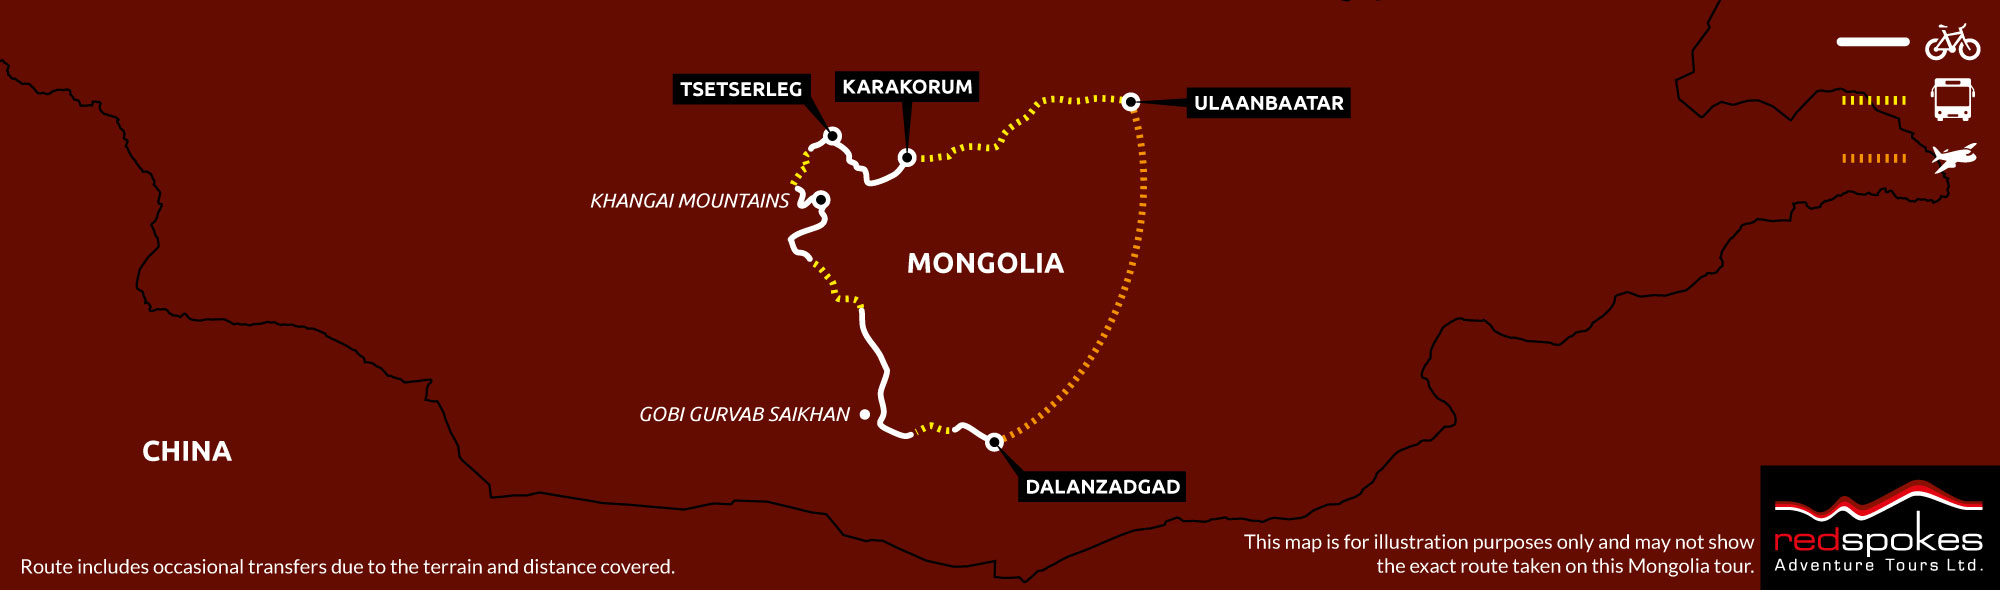 Example route for this Mongolia cycling holiday